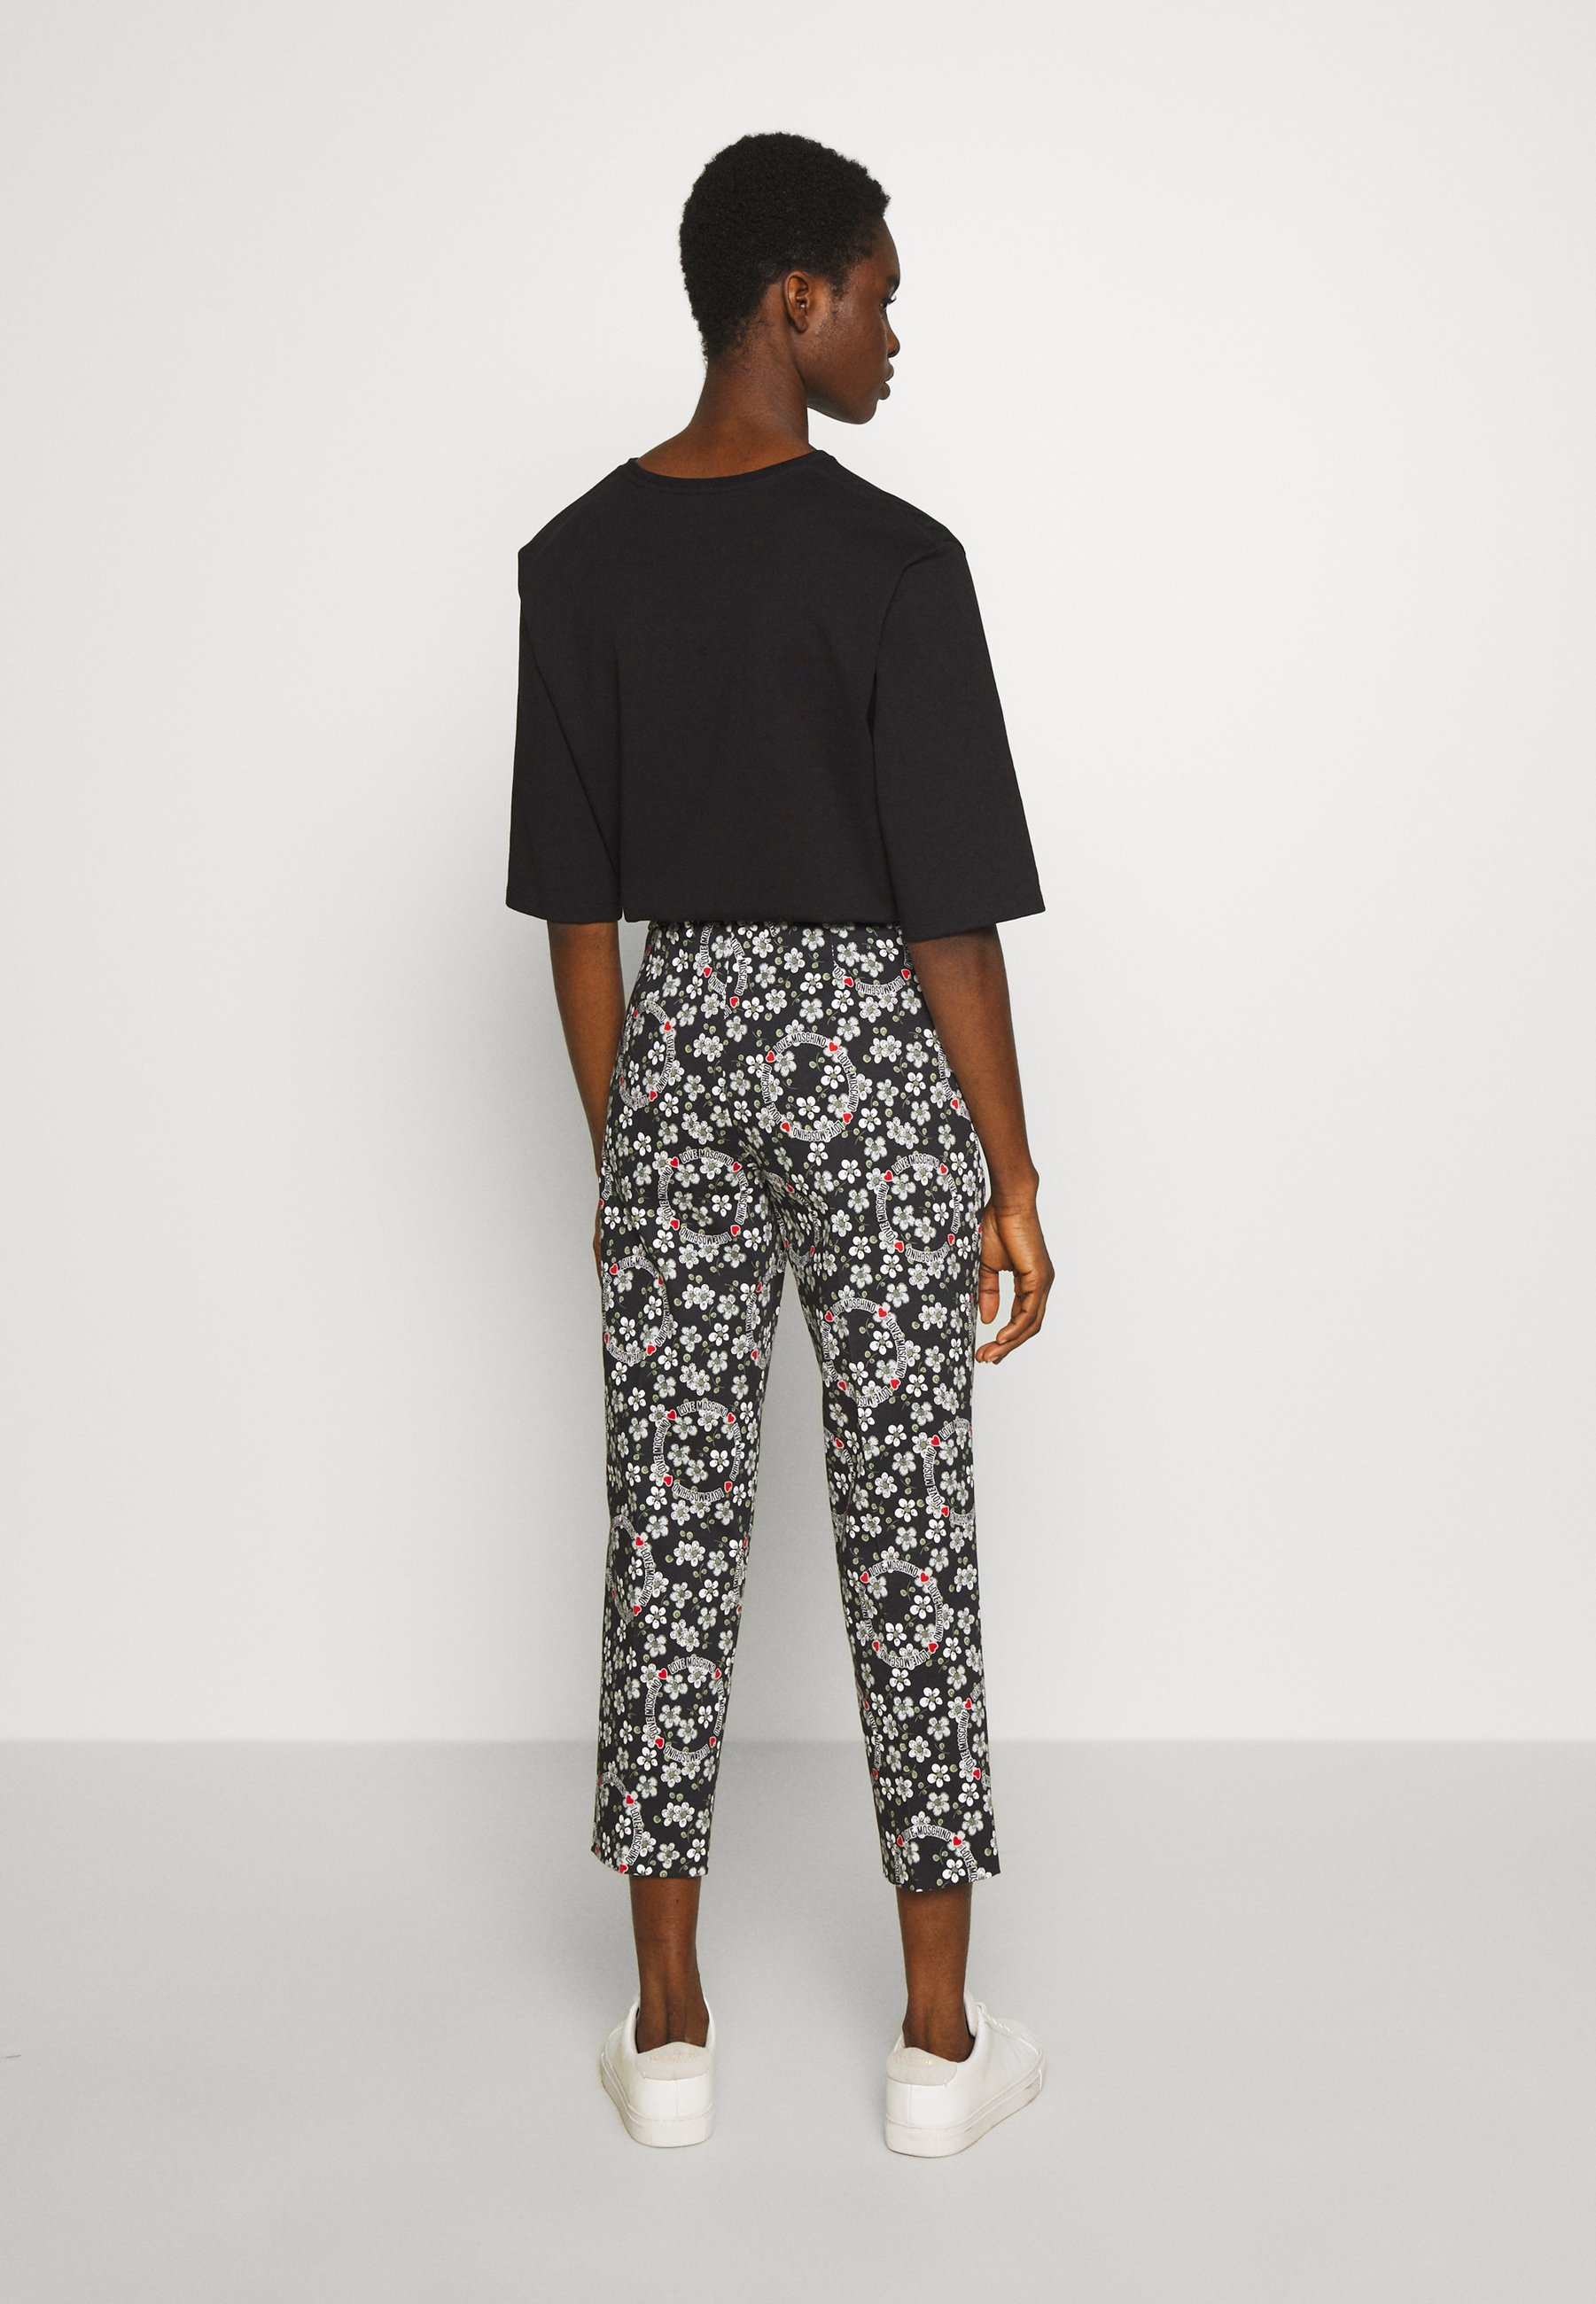 High-Quality Cheap Women's Clothing Love Moschino Trousers nero HIuMsncbp